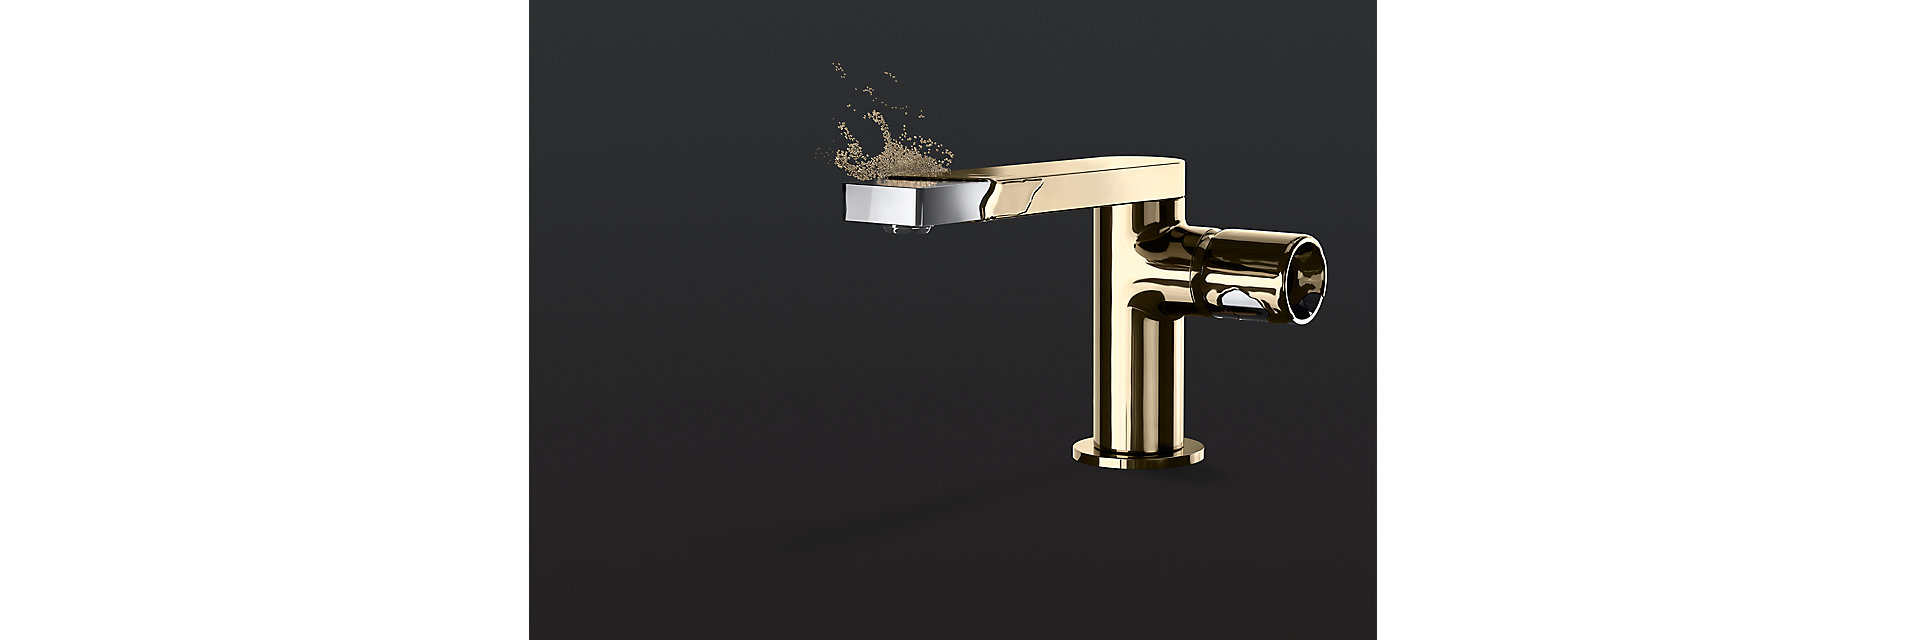 Kohler Toilets Showers Sinks Faucets And More For Bathroom  # Muebles Sanitarios Kohler